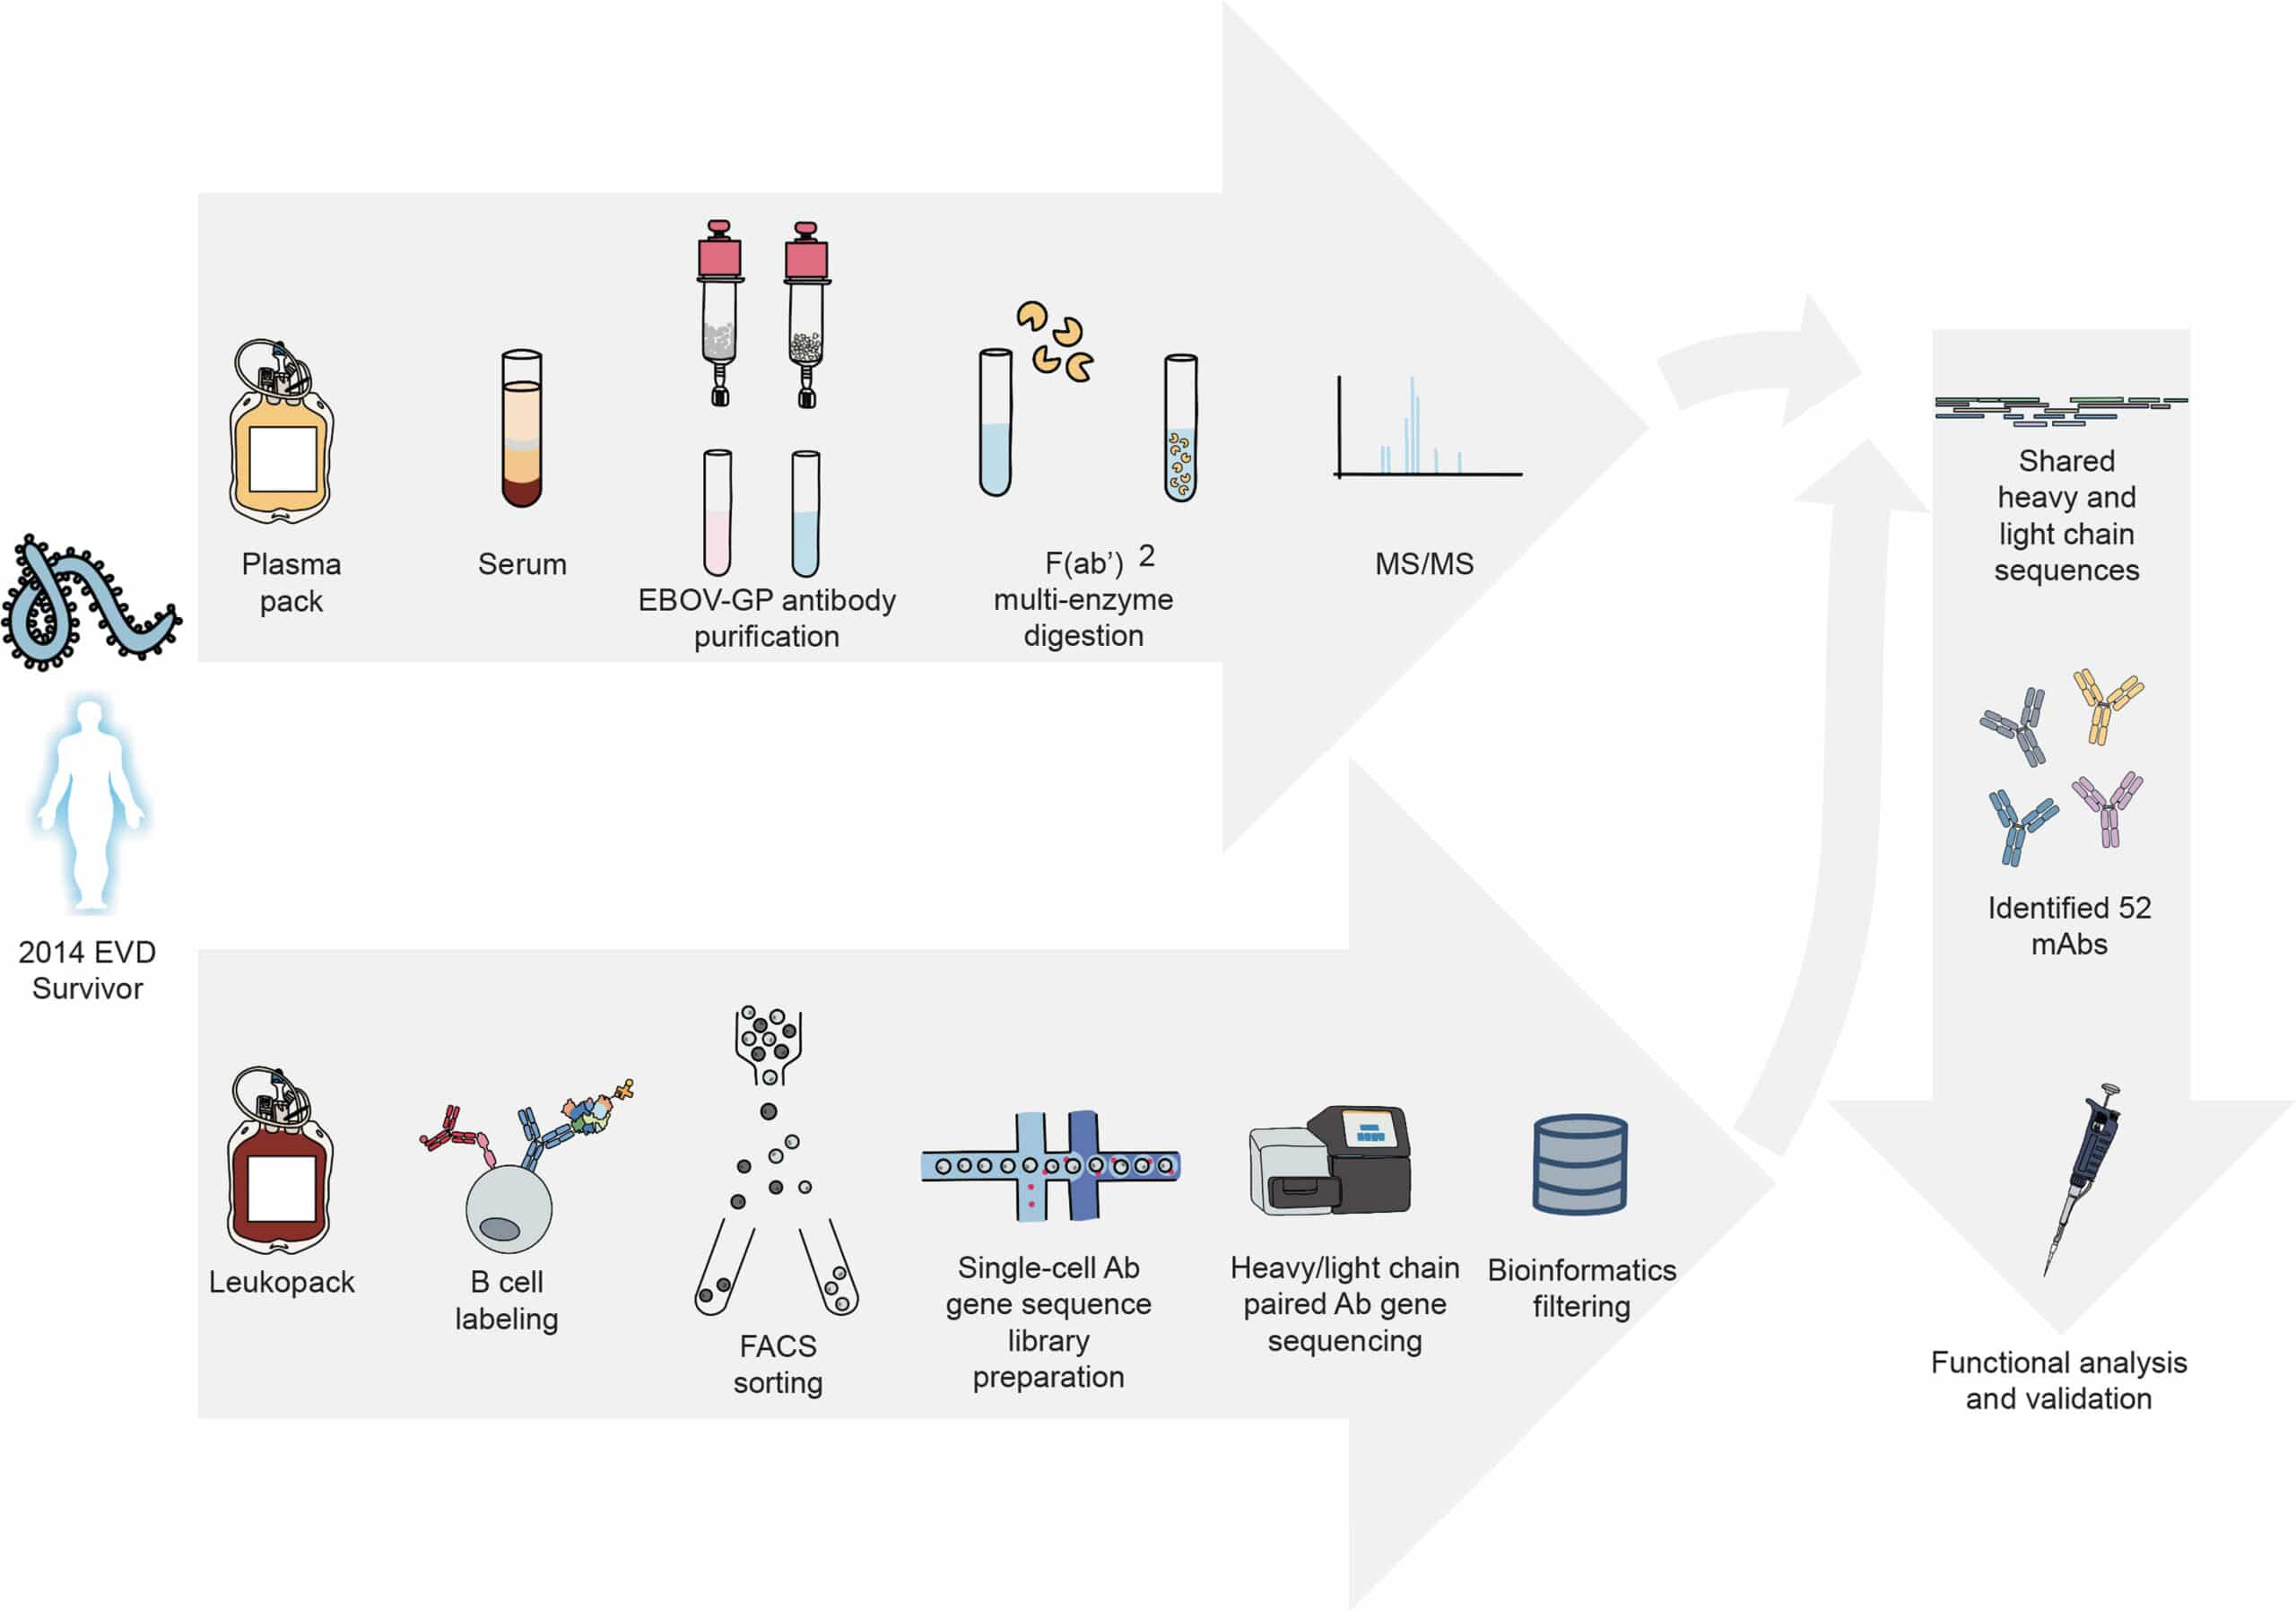 workflow shows affinity purification, mass spec and bioinformatic analysis